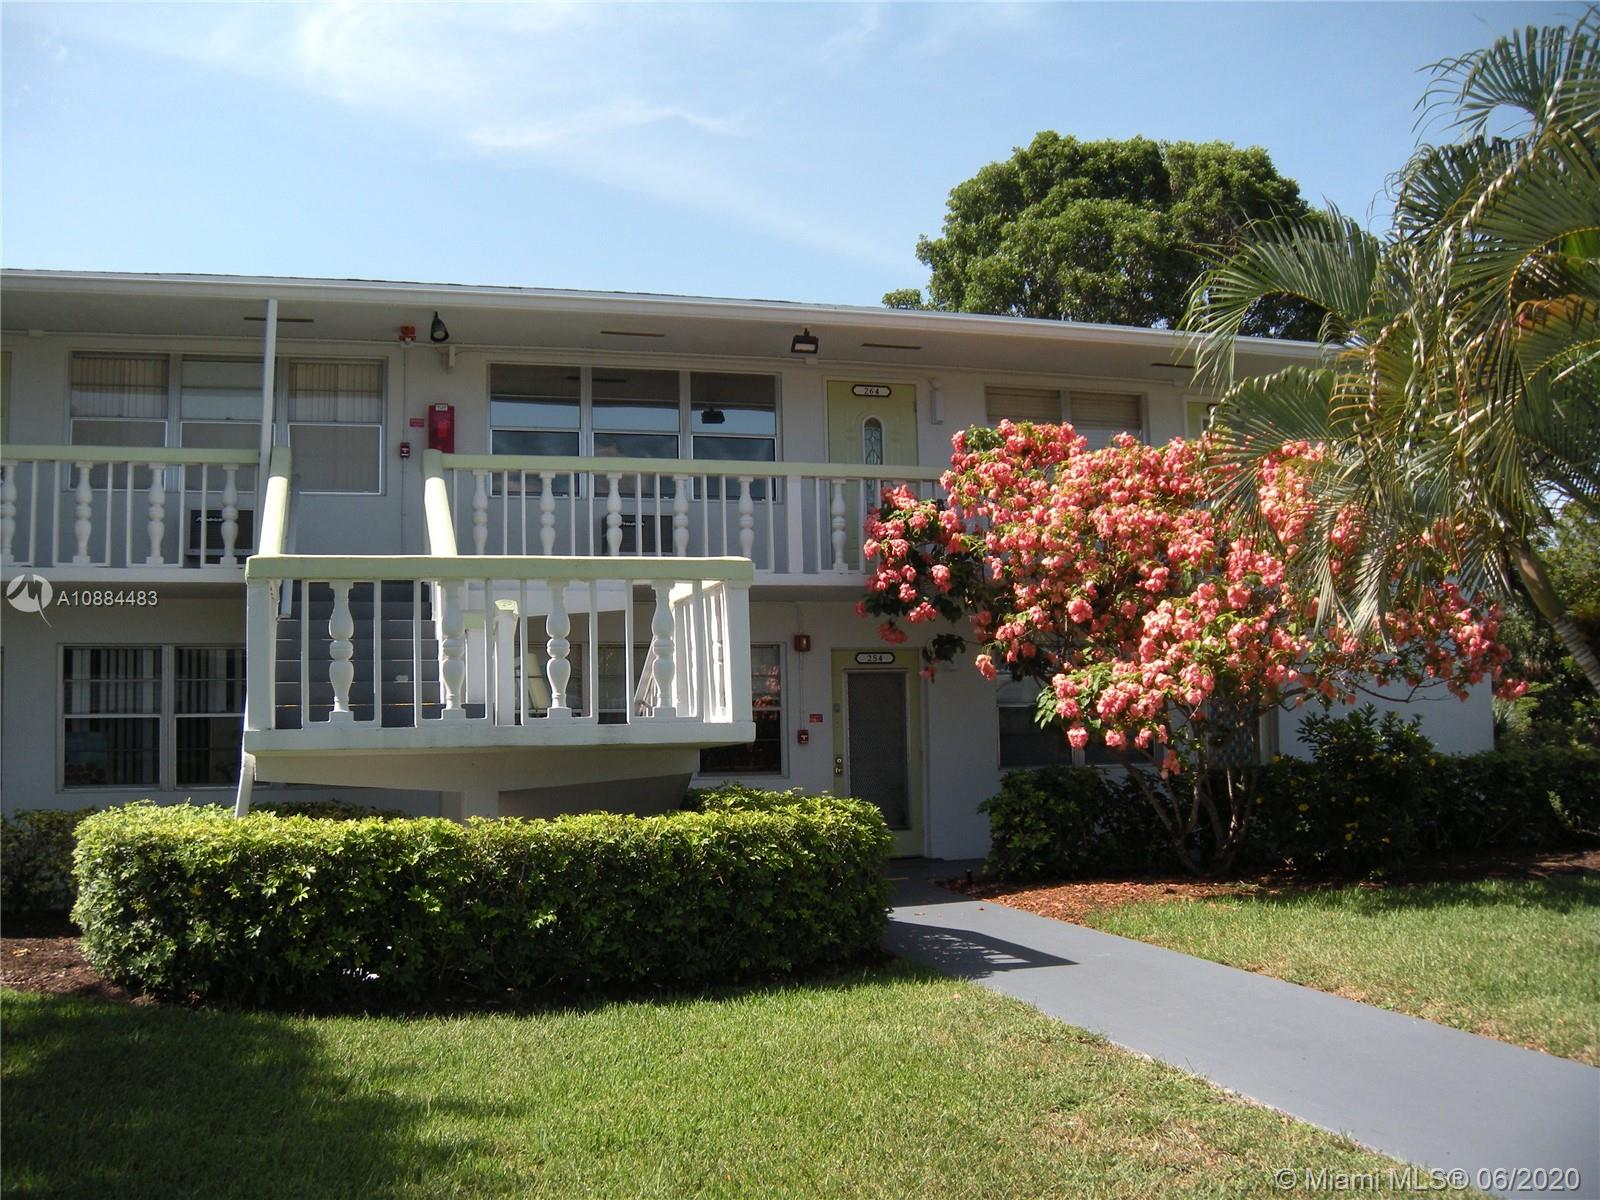 Updated 1br/1bth second floor condo in great condition with garden and water views from the glass enclosed patio overlooking the canal. Features include new kitchen cabinets w/stainless steel appliances, updated bath, tile throughout, large bedroom with mirrored closet doors, large storage closet in hallway, community laundry room, ceiling fans, in close proximity to pool and clubhouse and tons of security. Very active senior 55+ community with theater, pools, tennis courts, fitness center, free shuttle, security 24/7, billiards room, library, social events including live shows, dancing & yoga classes and more. Truly a resort style community for the elderly located minutes from beautiful Deerfield Beach and close to shopping, banks and casinos with free transportation with the shuttle.